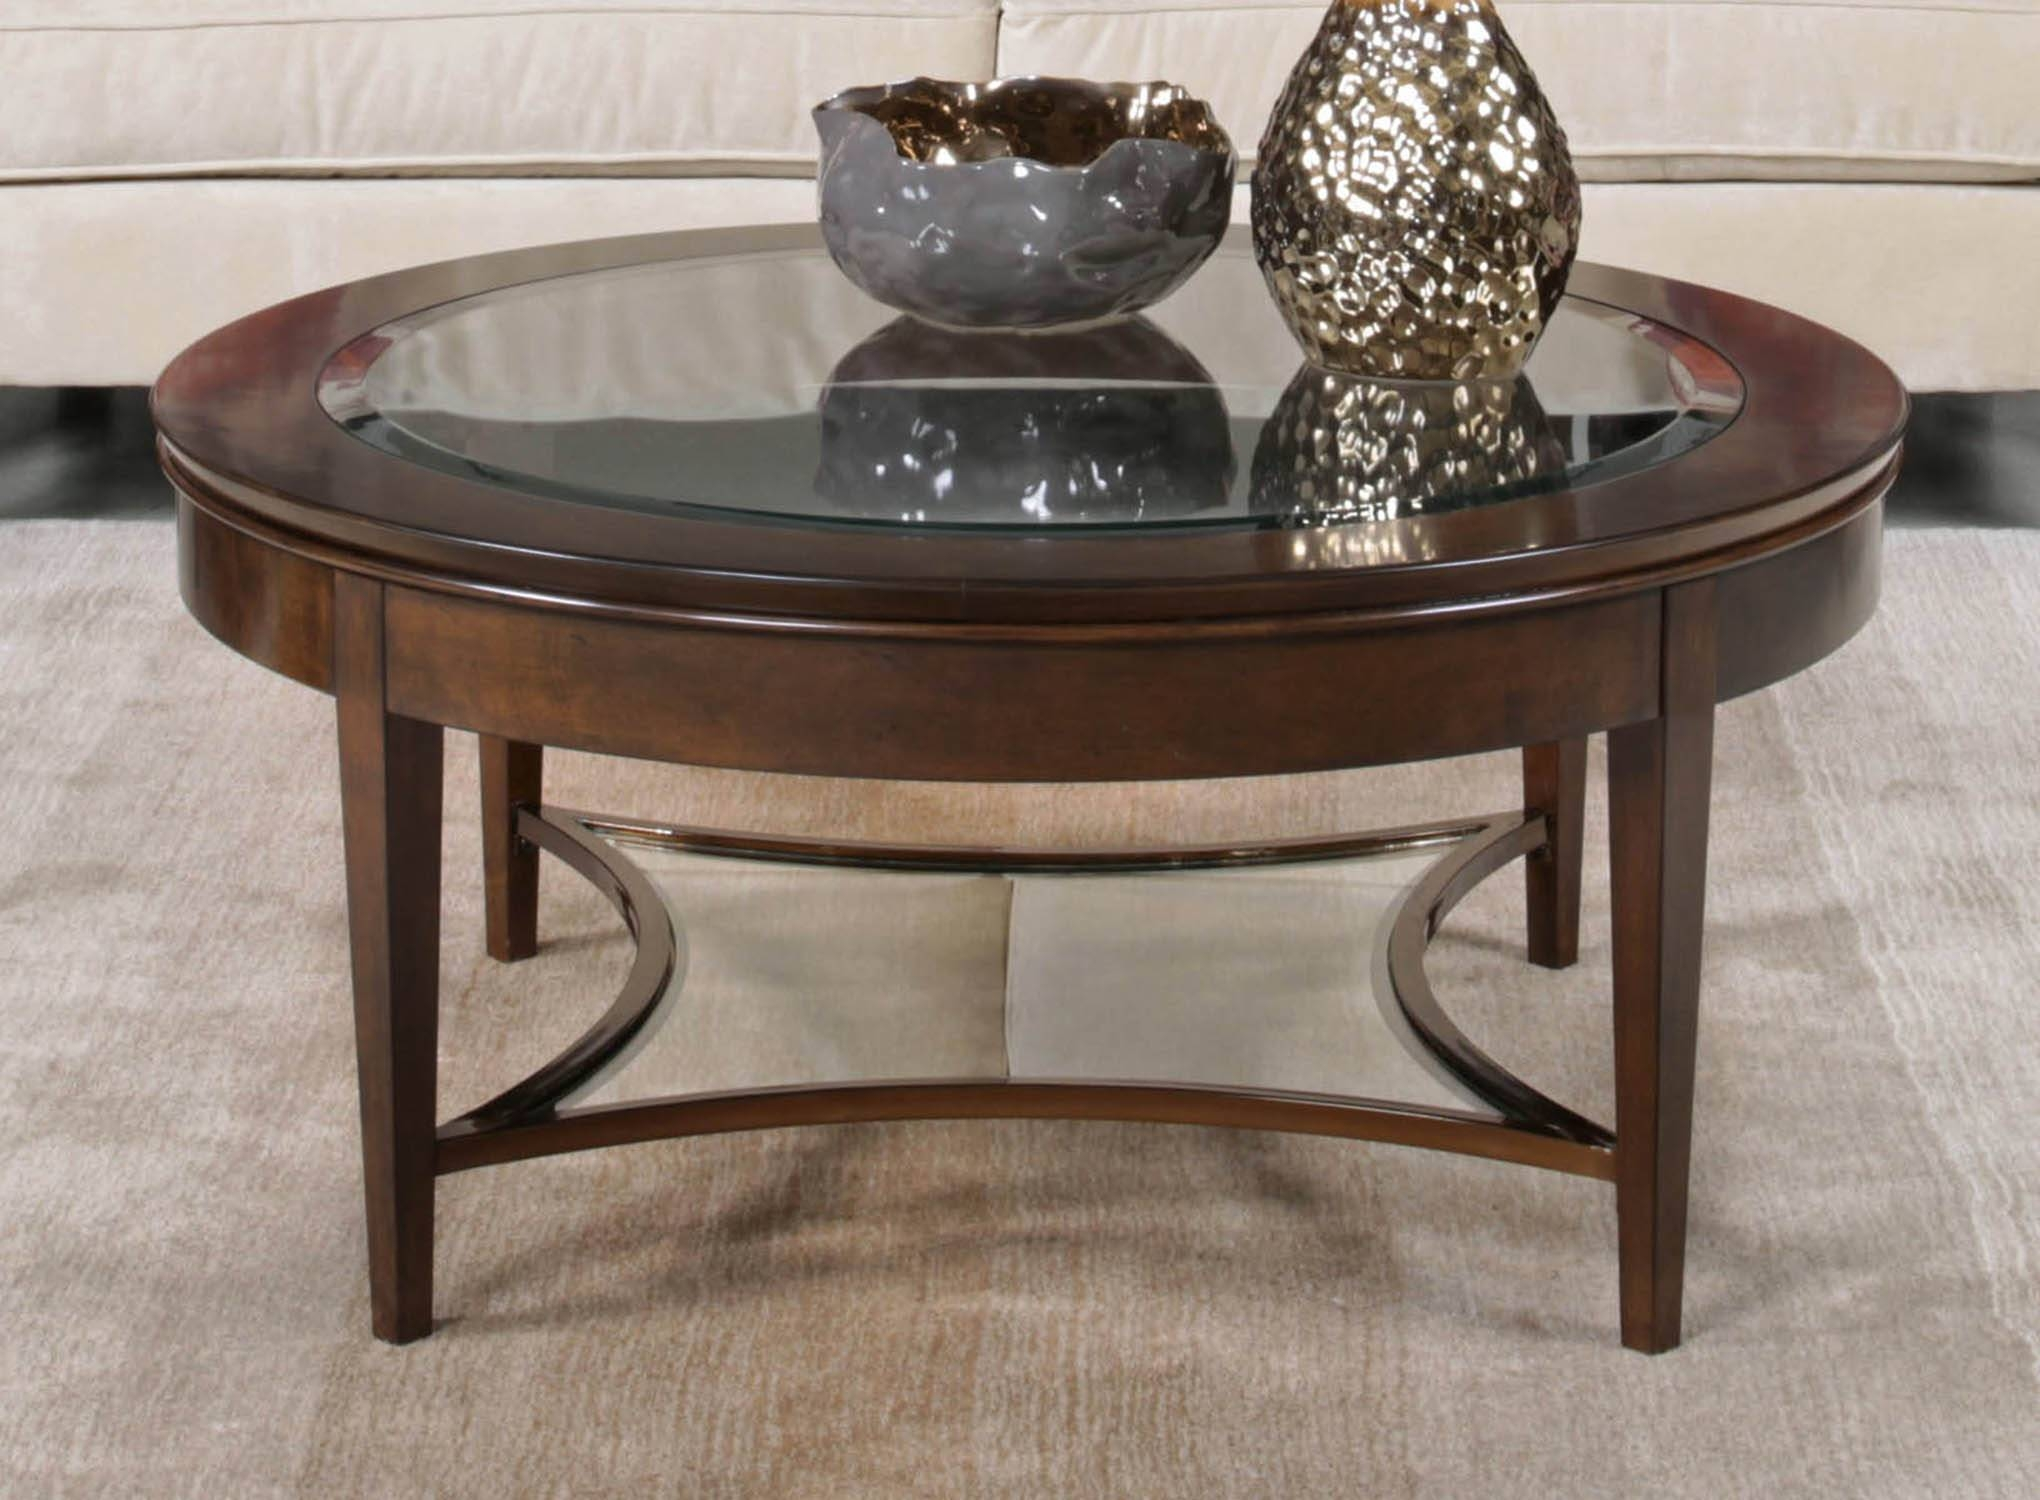 Coffee Tables Ideas: Best Kincaid Tuscano Coffee Table Kincaid with regard to Elise Coffee Tables (Image 2 of 30)